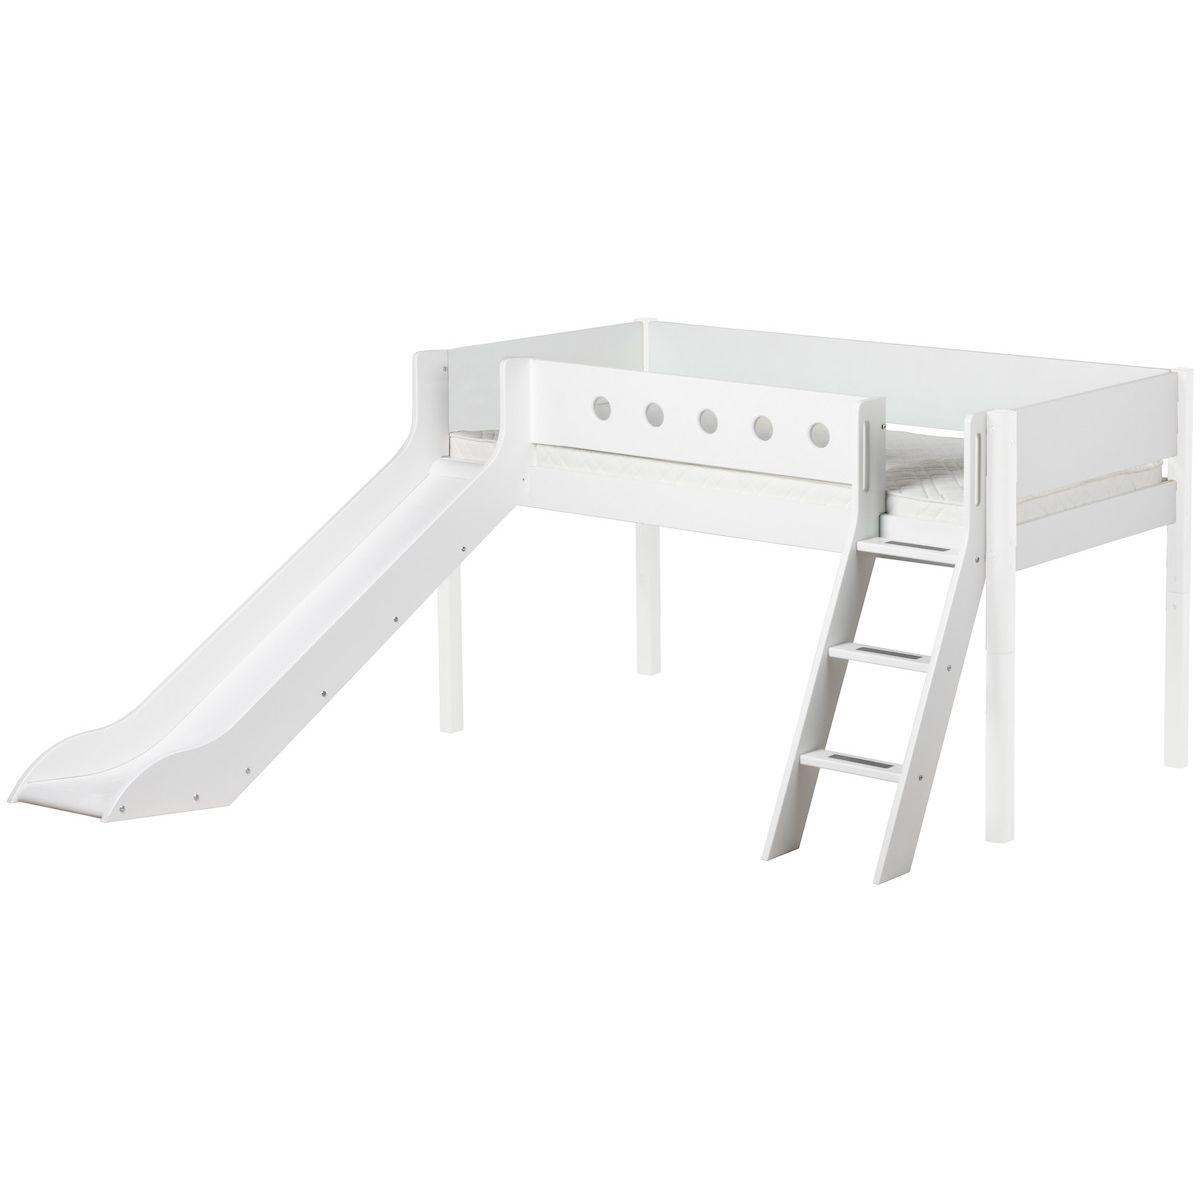 Cama media alta 90x200 WHITE Flexa escalera inclinada tobogán barrera y patas blancas